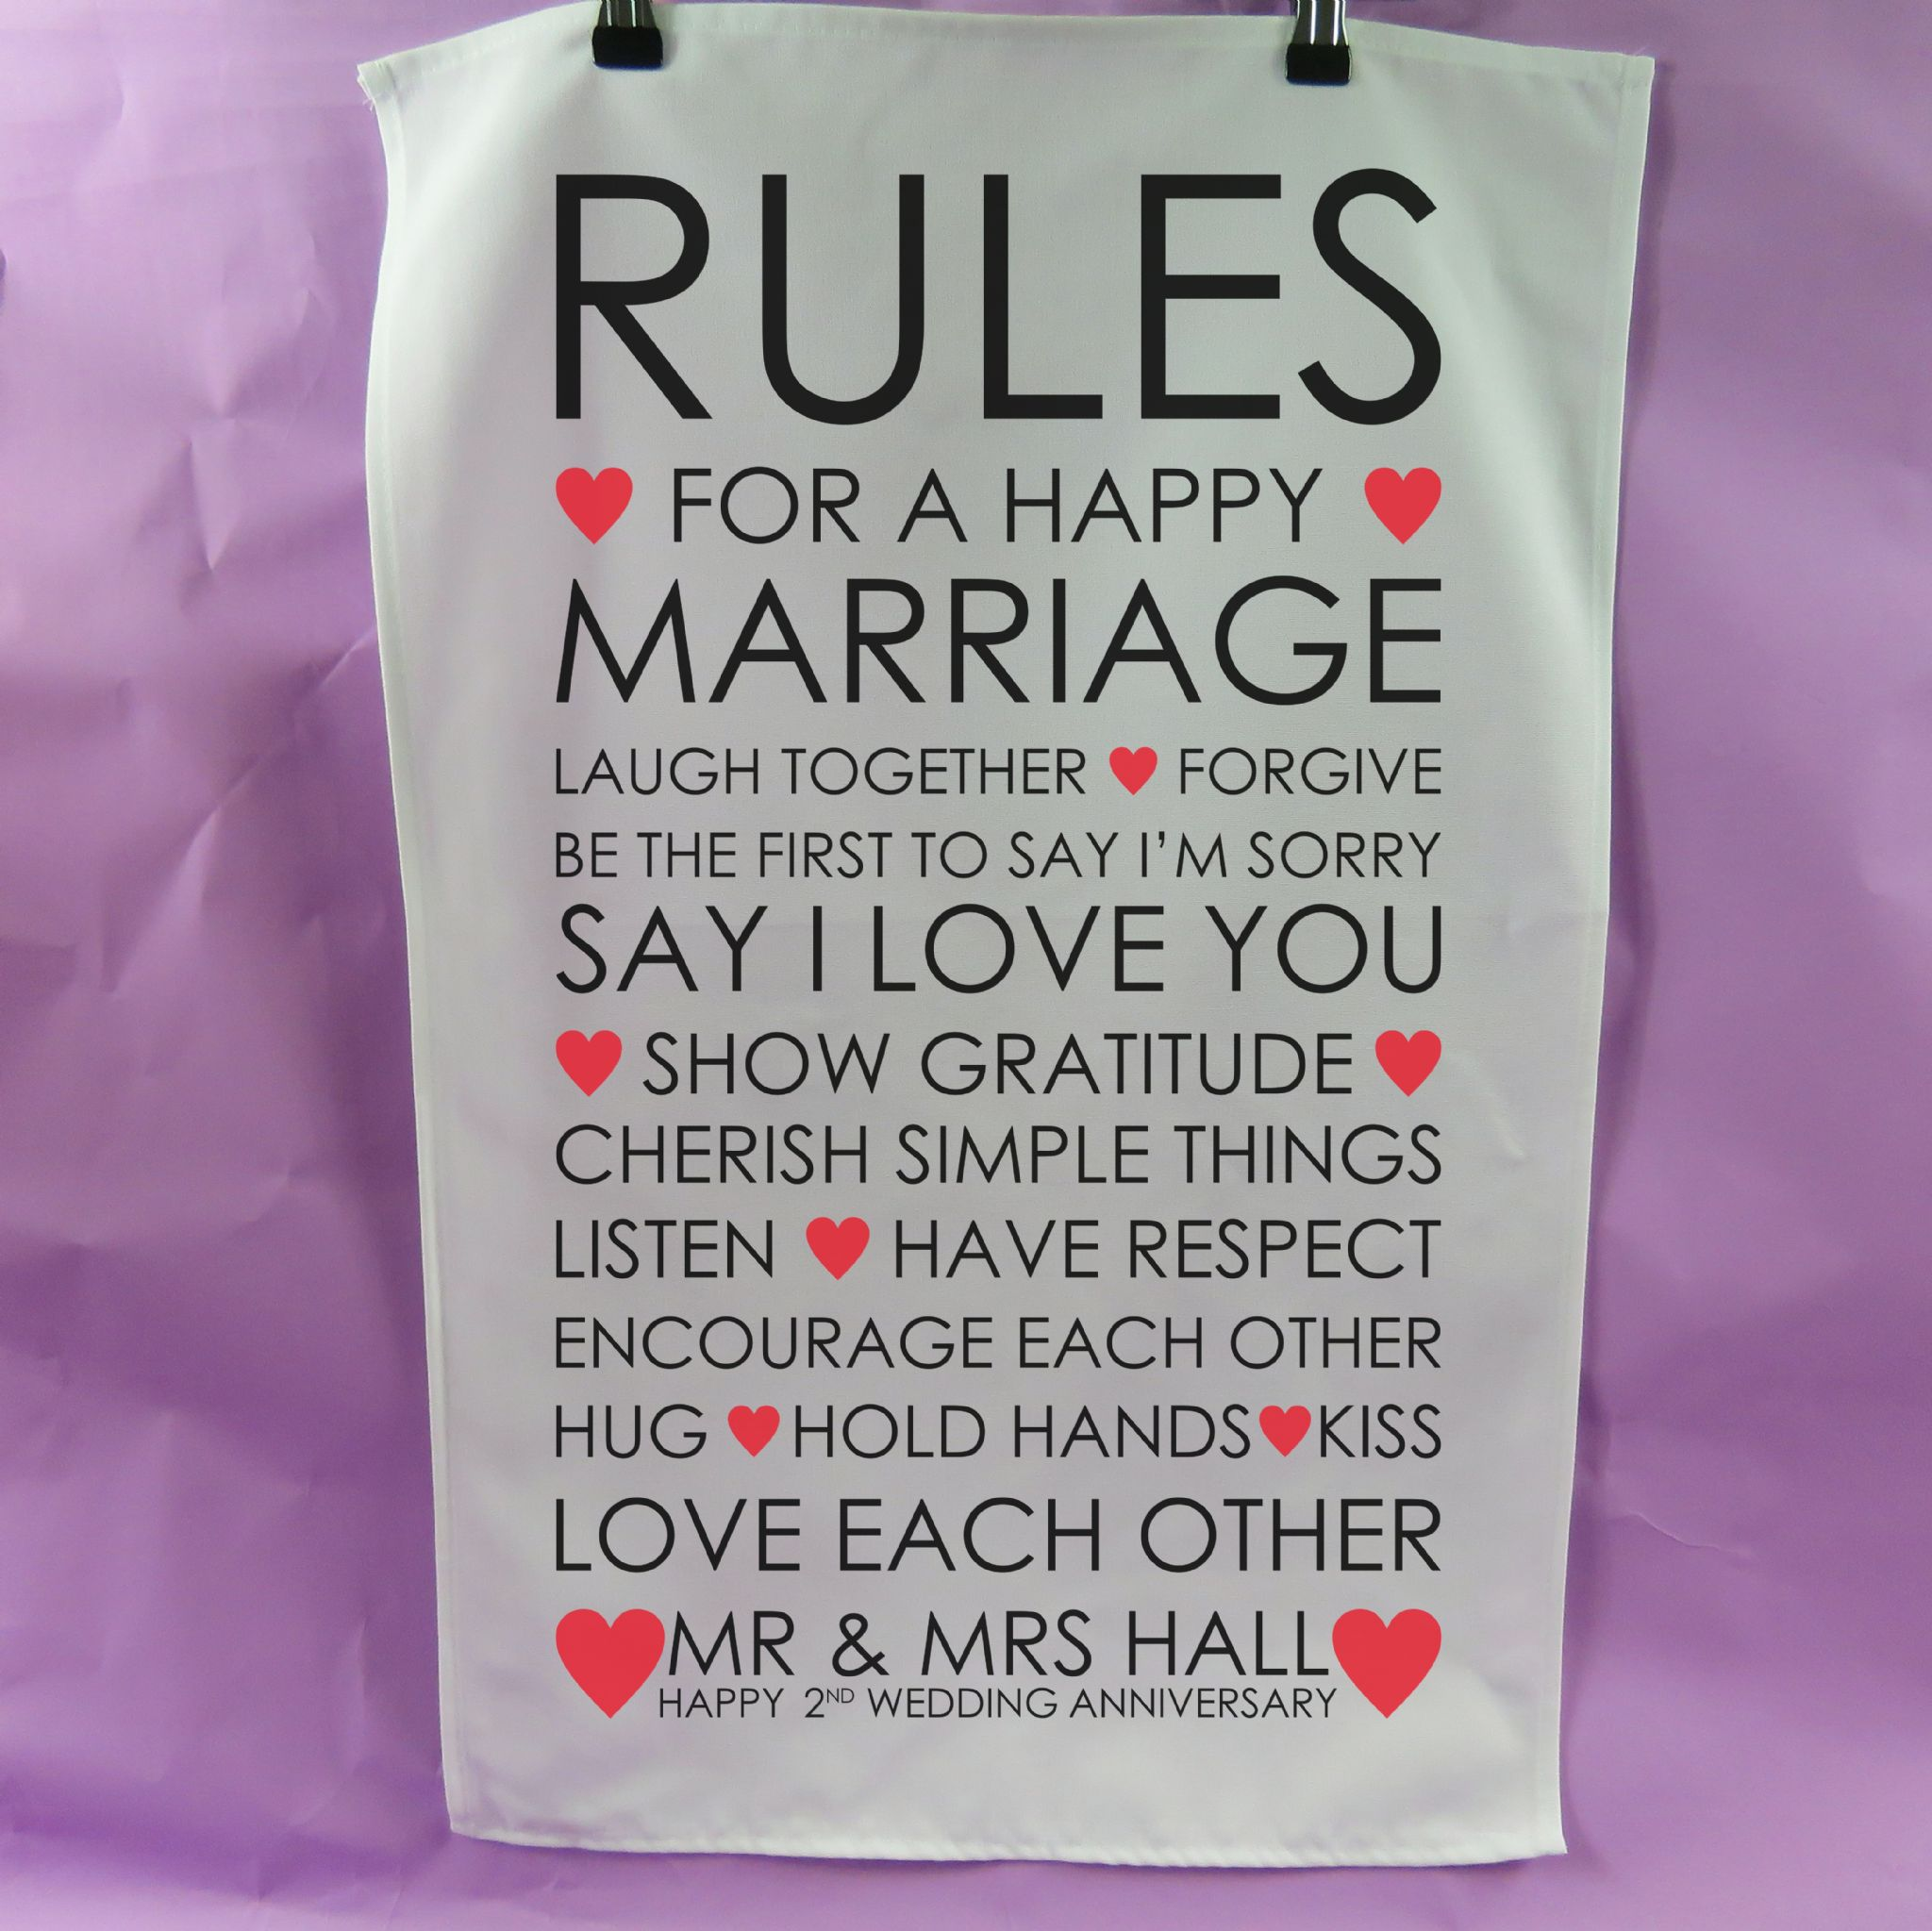 Rules Happy Marriage Tea Towel 2nd Anniversary Gift Cotton Present Wedding Tea Towel Vintage Style